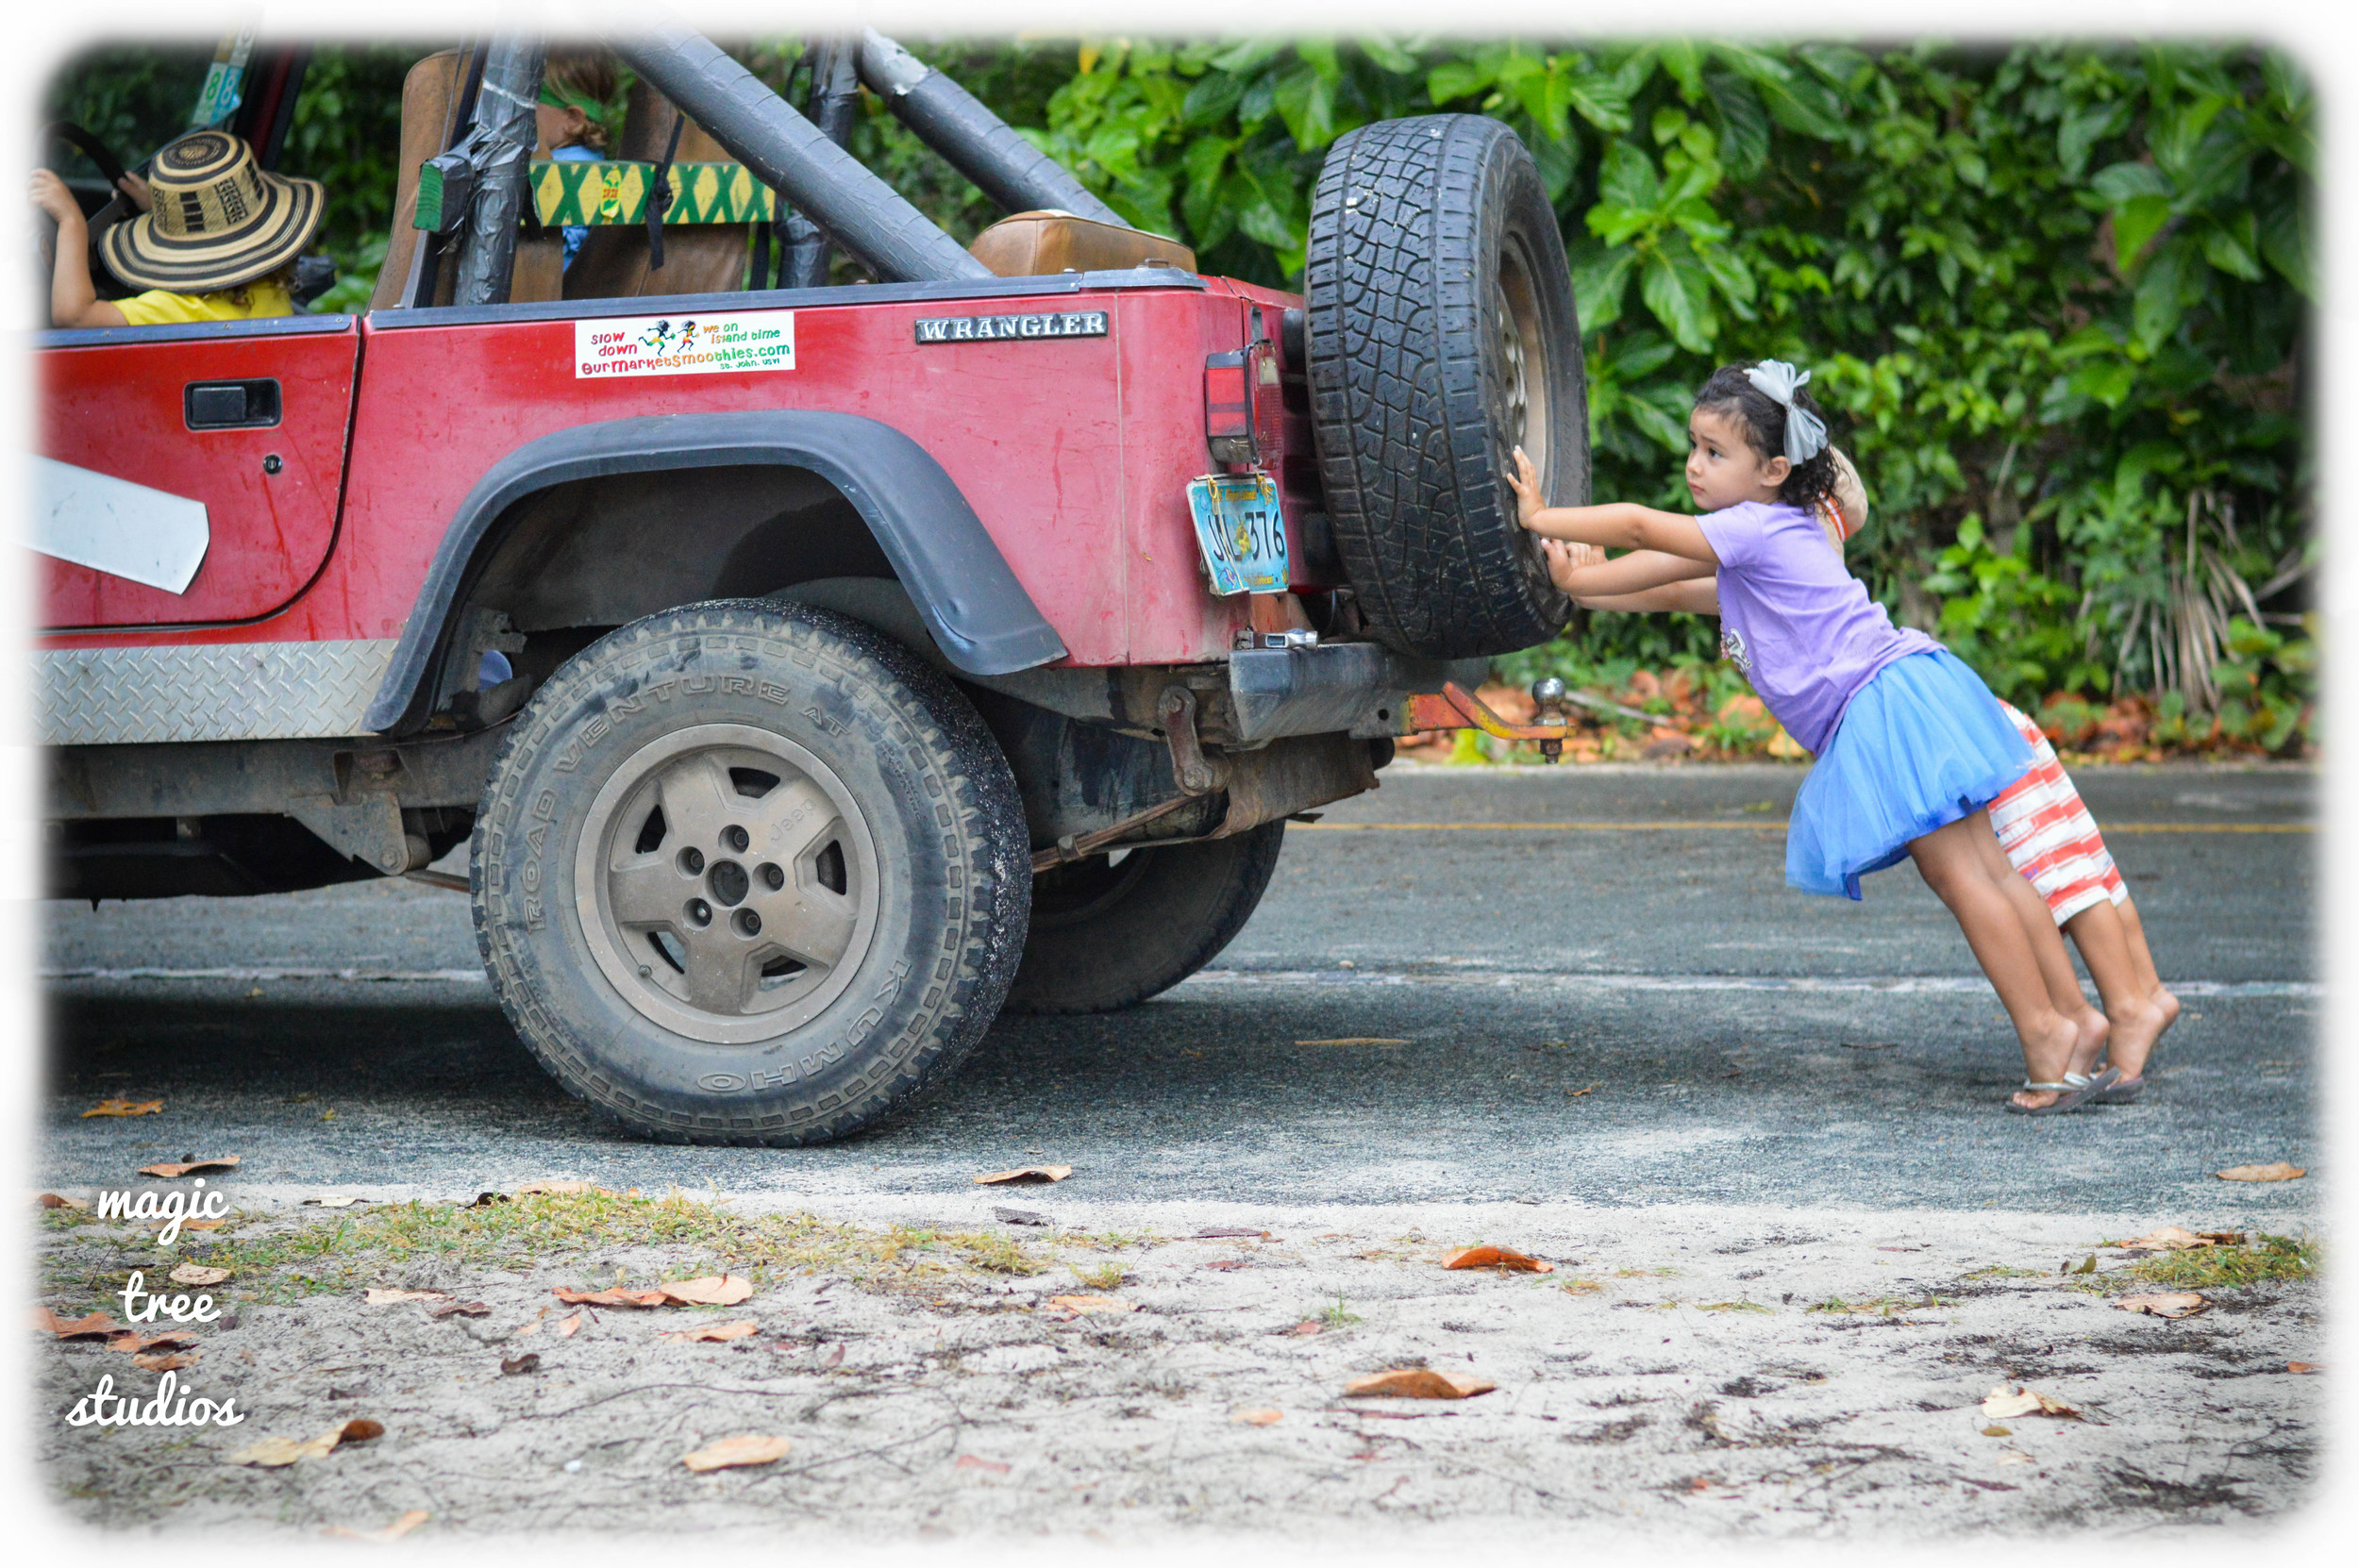 audie and leticia rally to push as brian steers the jeep